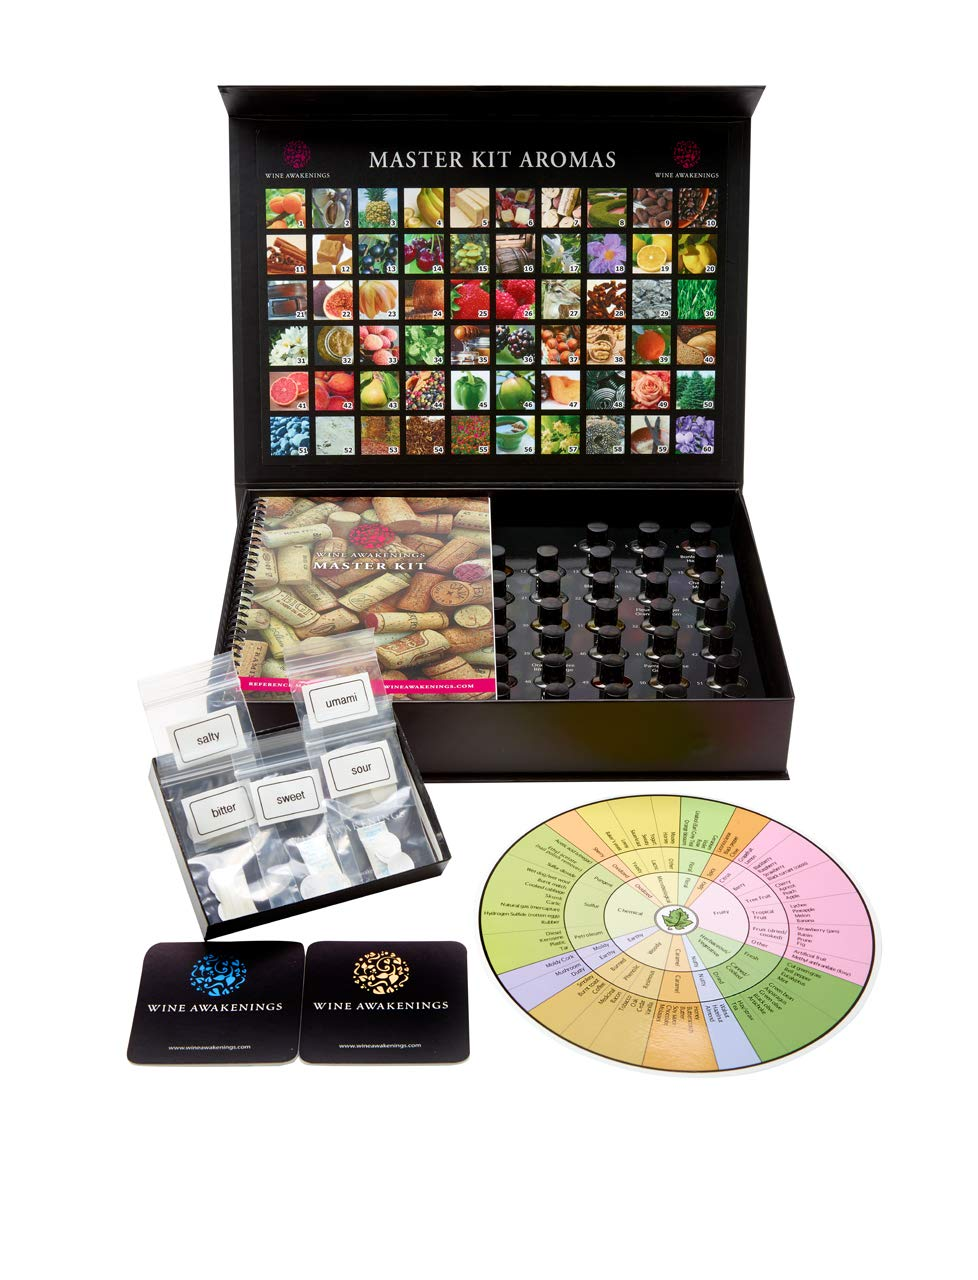 Wine Aroma Kit- Master Kit 60 Wine Aromas Magnum Edition. 50 page Reference Manual, Taste Discs, Anne Noble Wine Tasting Wheel. The most prevalent aromas from all varietals. Guaranteed for 10 years! by Wine Awakenings